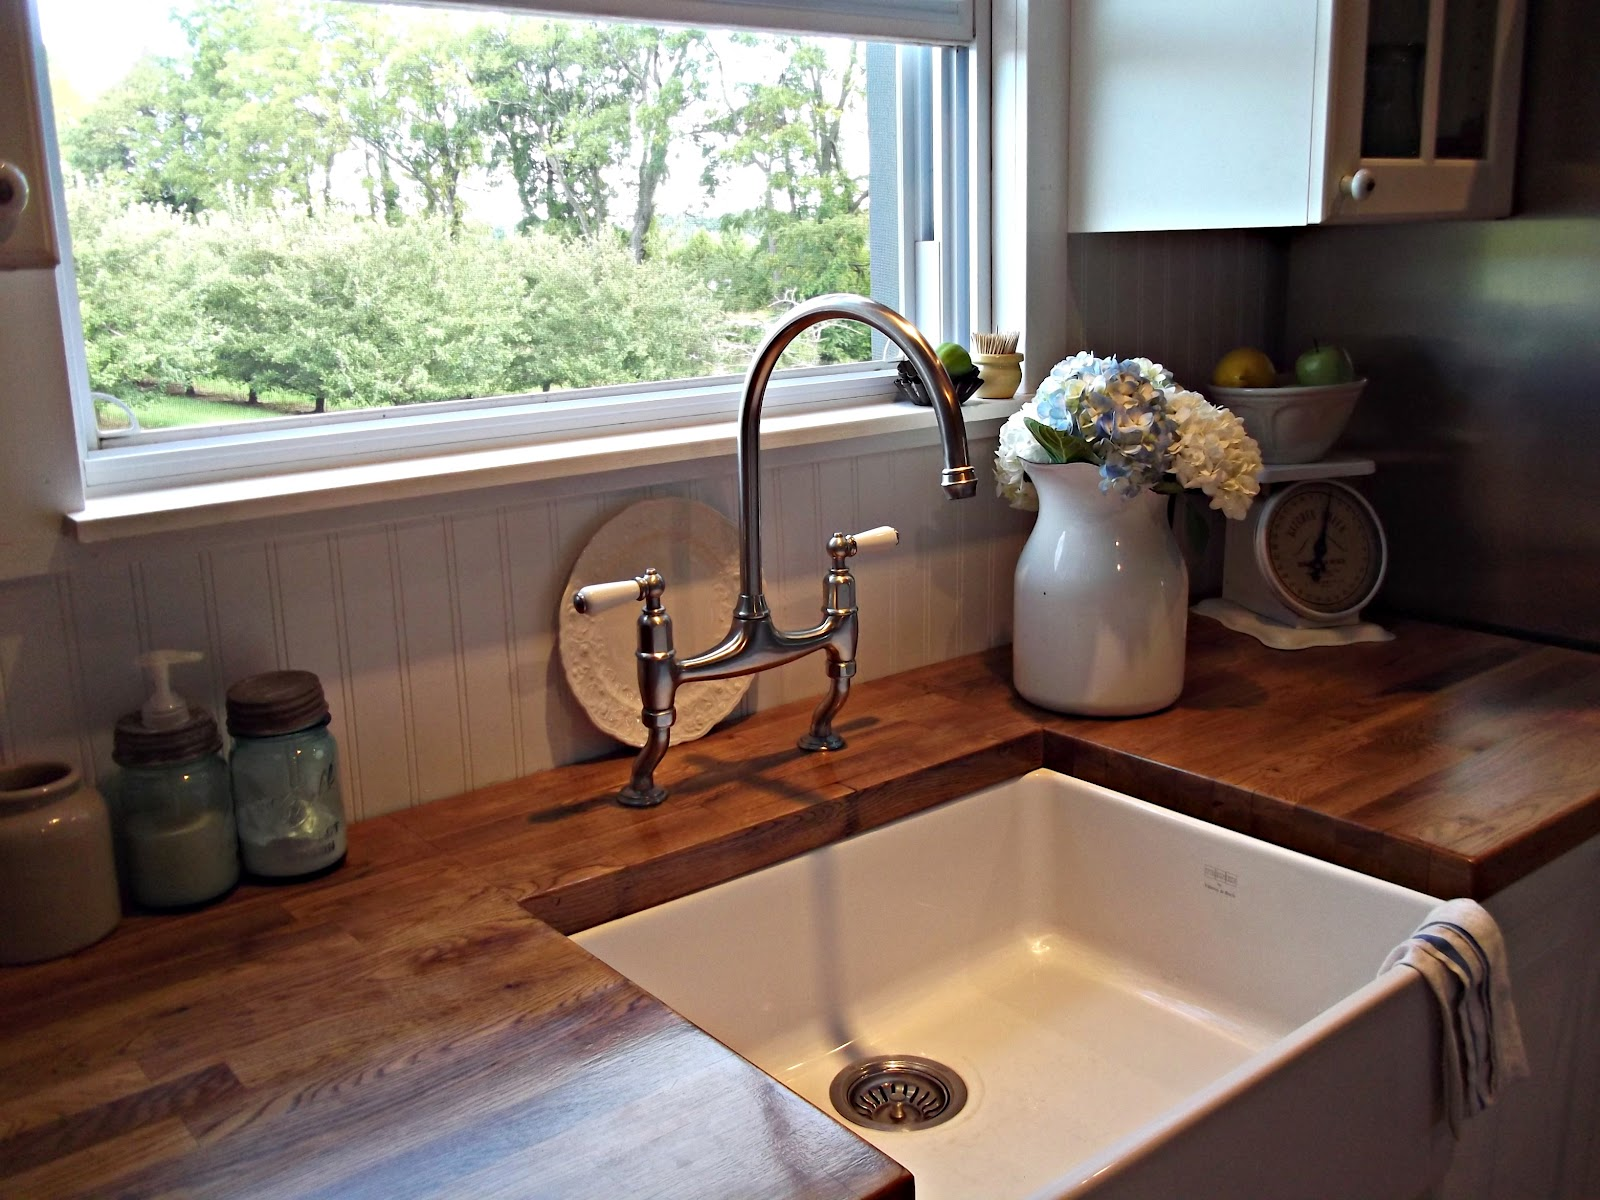 If ever we move-a Farm Style Sink is #1 on my must-have list!